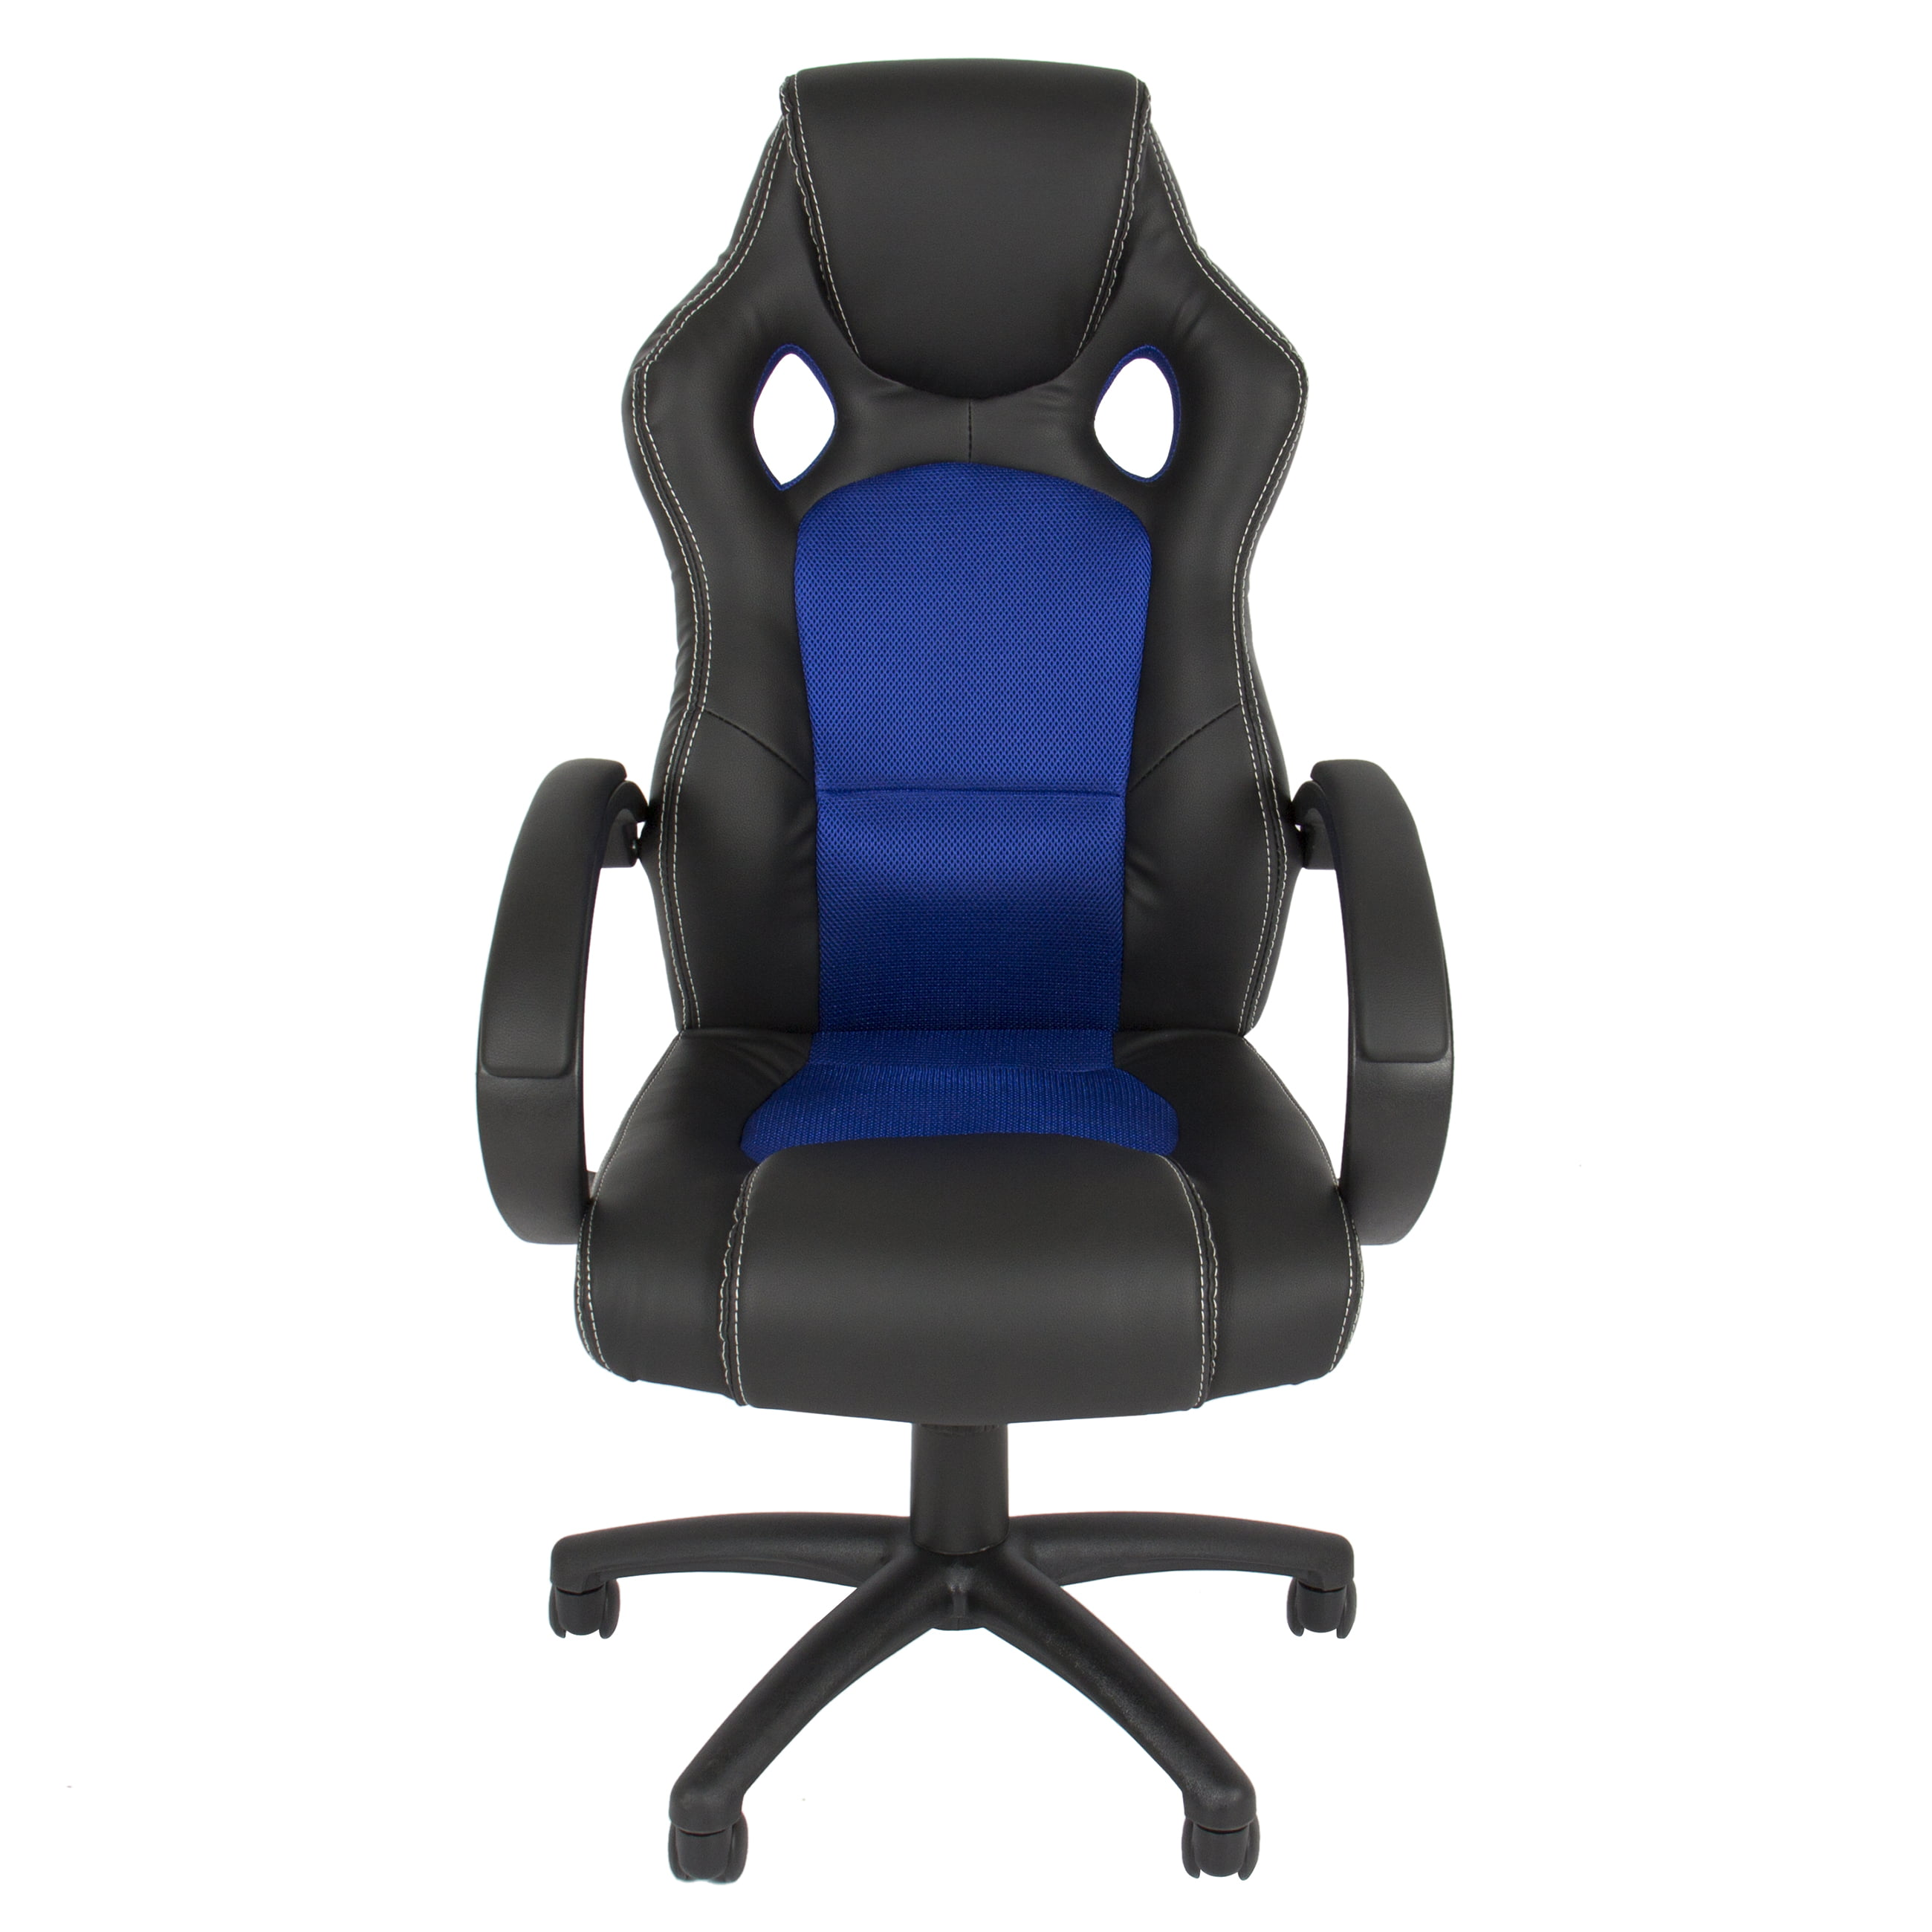 bcp executive racing gaming office desk chair pu leather swivel